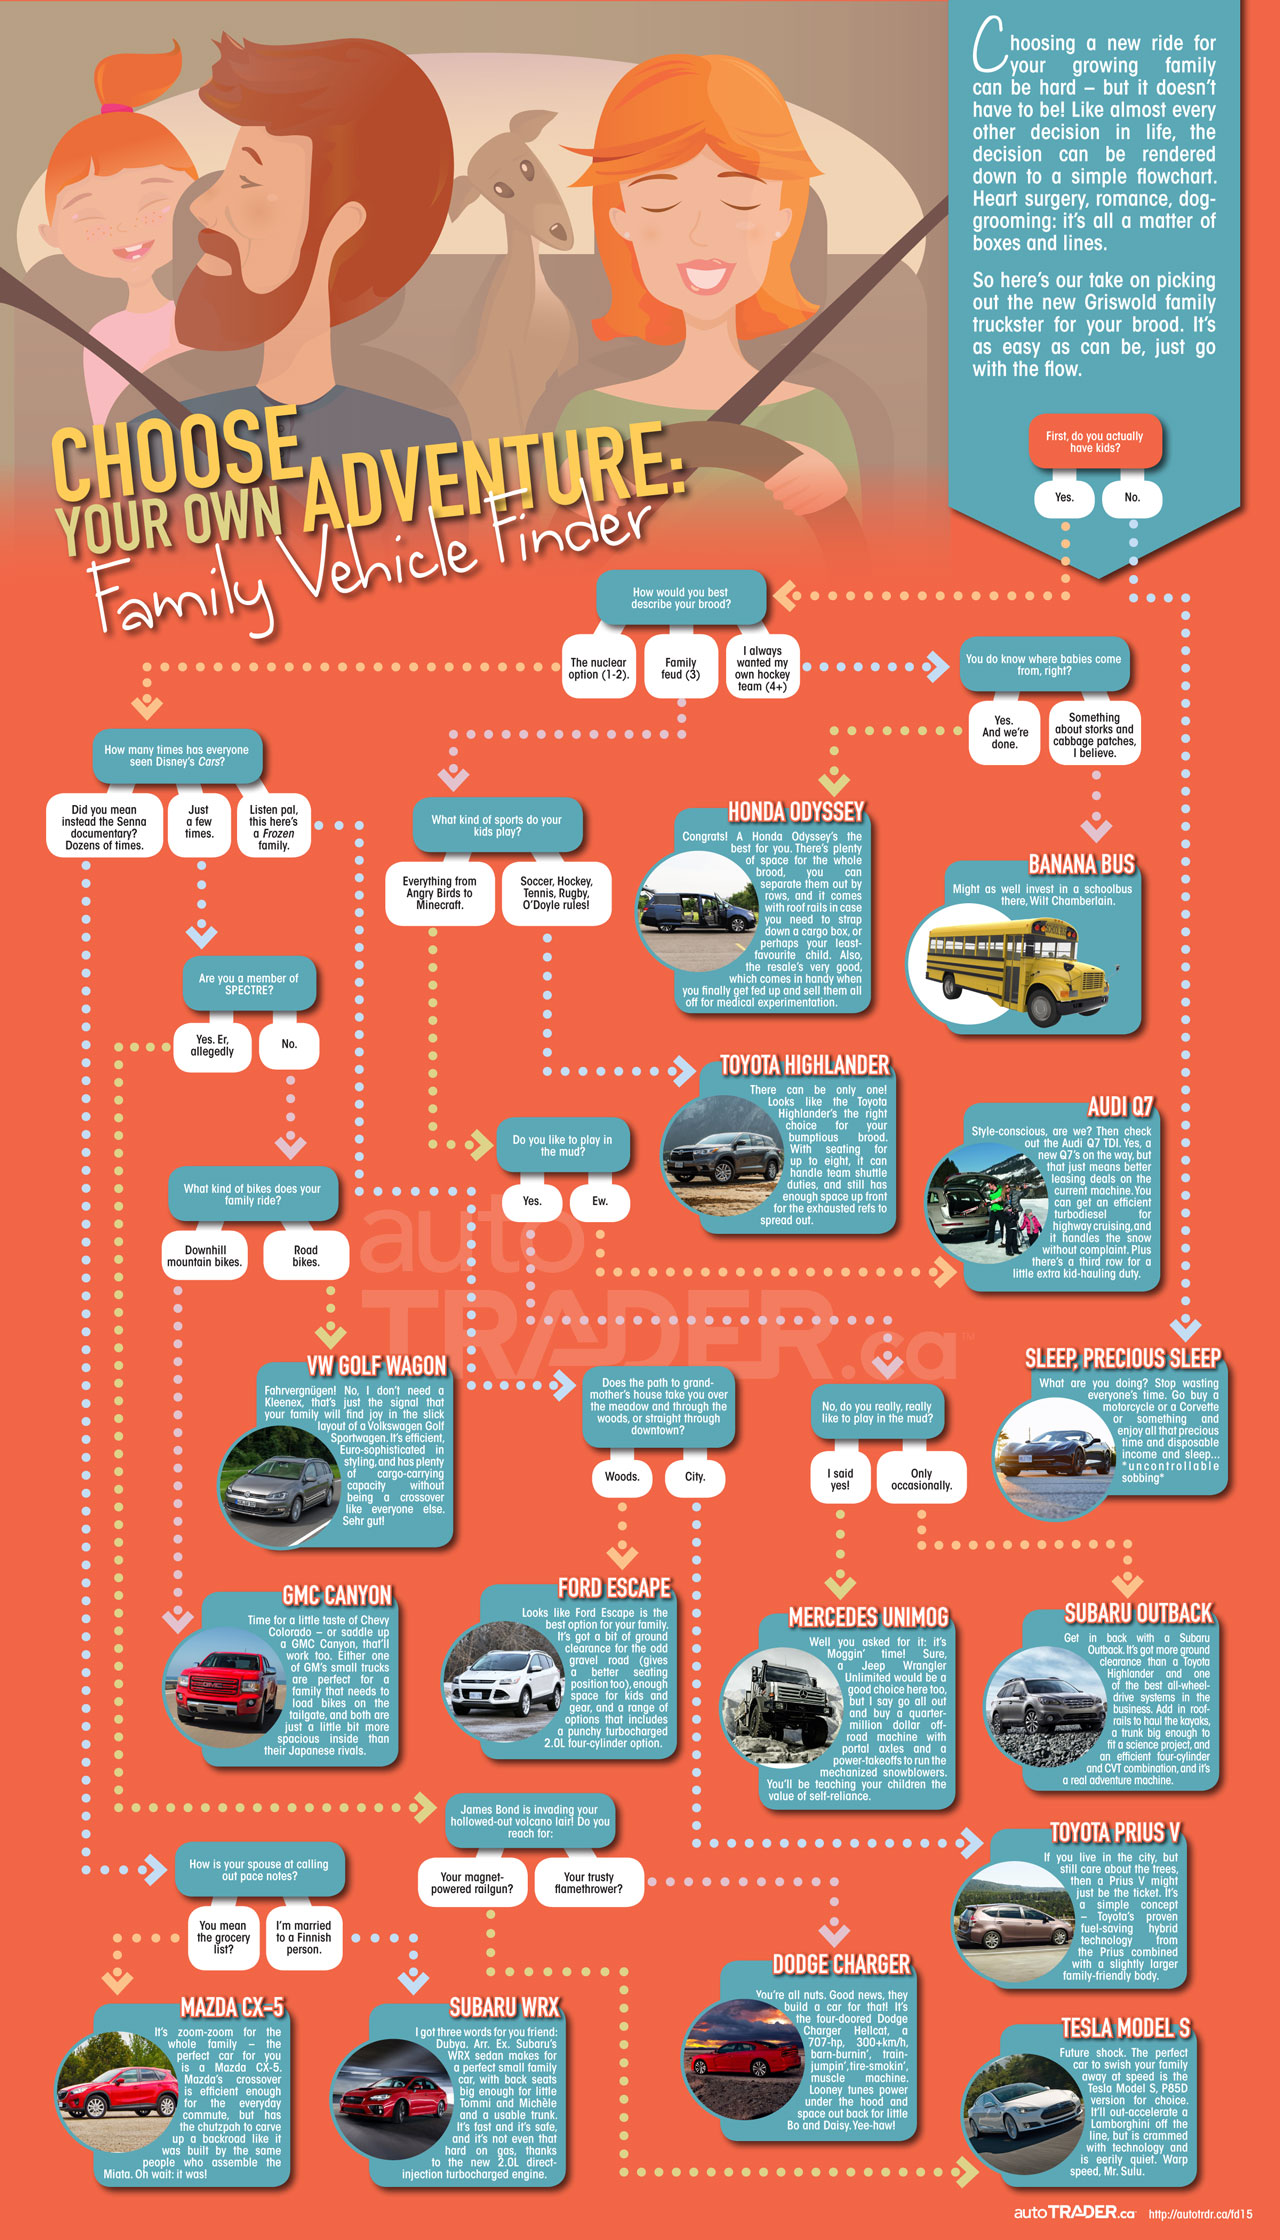 Choosing a new ride for your growing family can be hard – but it doesn't have to be! Like almost every other decision in life, the decision can be rendered down to a simple flowchart. Heart surgery, romance, dog-grooming: it's all a matter of boxes and lines. <br><br>So here's our take on picking out the new Griswold family truckster for your brood. It's as easy as can be, just go with the flow. <br><br>For the full flowchart go to http://autotrdr.ca/fd15